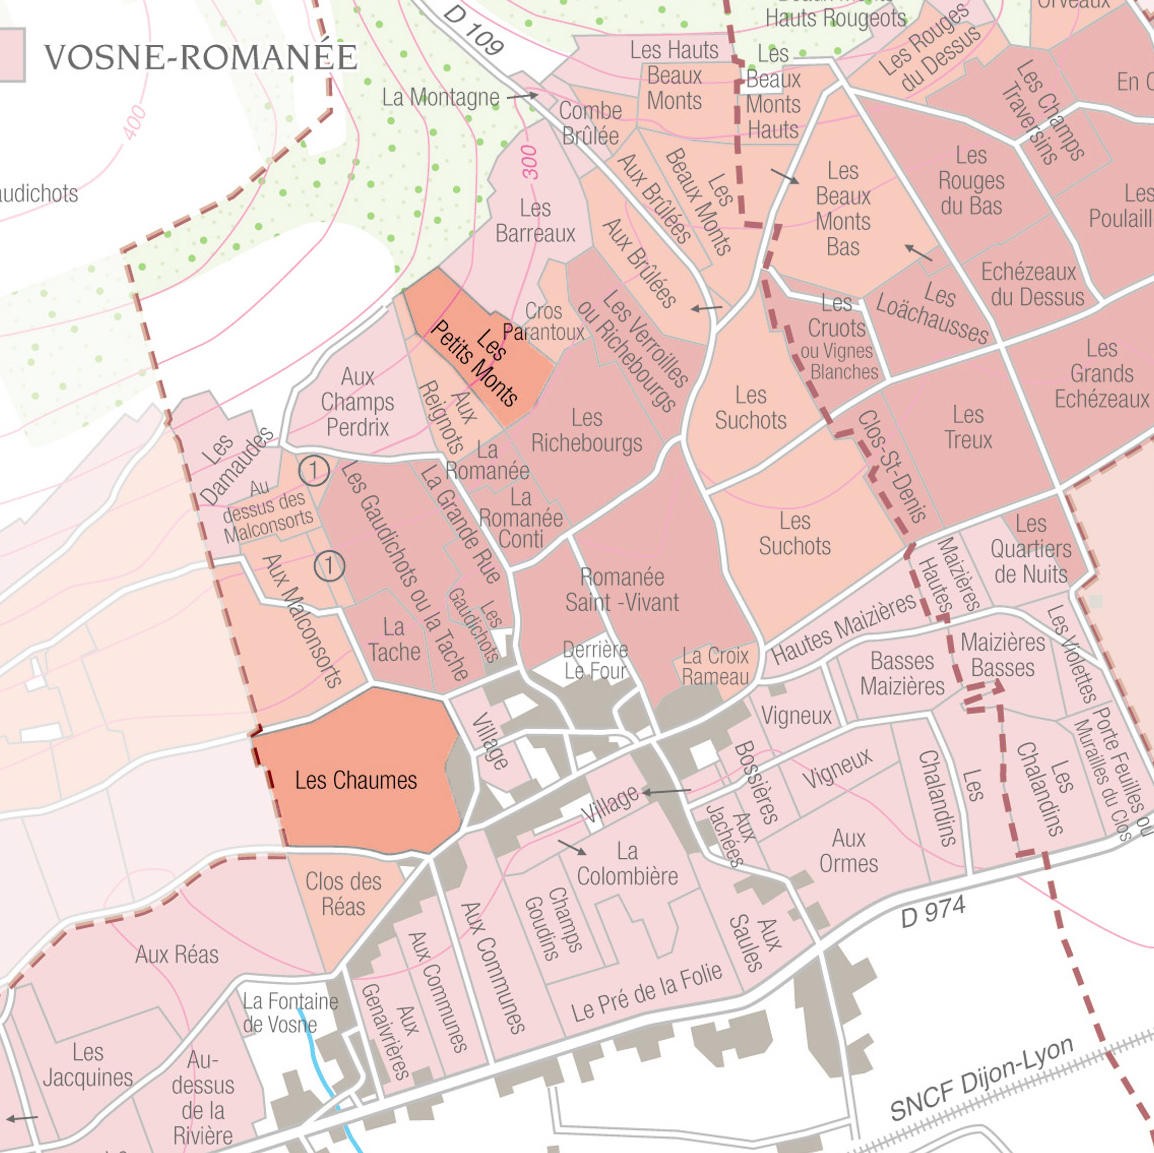 Vosne-Romanée 1er Cru - This cuvée of Vosne-Romanée Premier Cru is a blend of two plots situated in